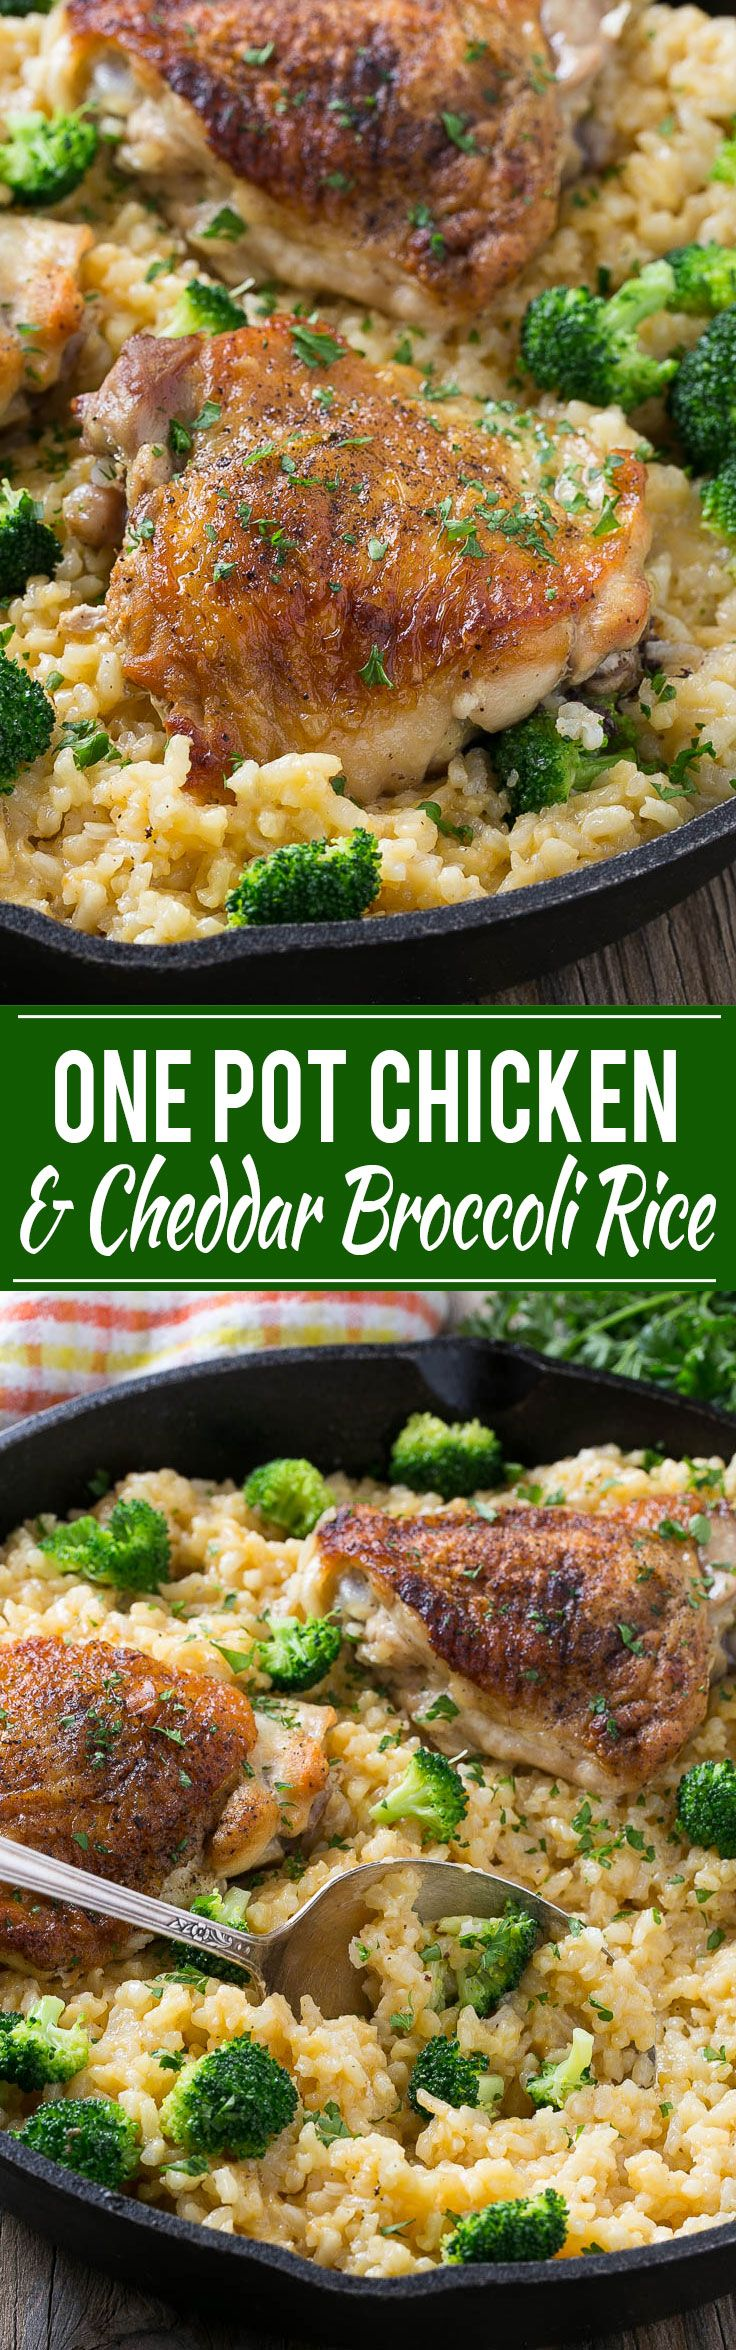 This One Pot Chicken With Cheddar Broccoli Rice Combines -8641